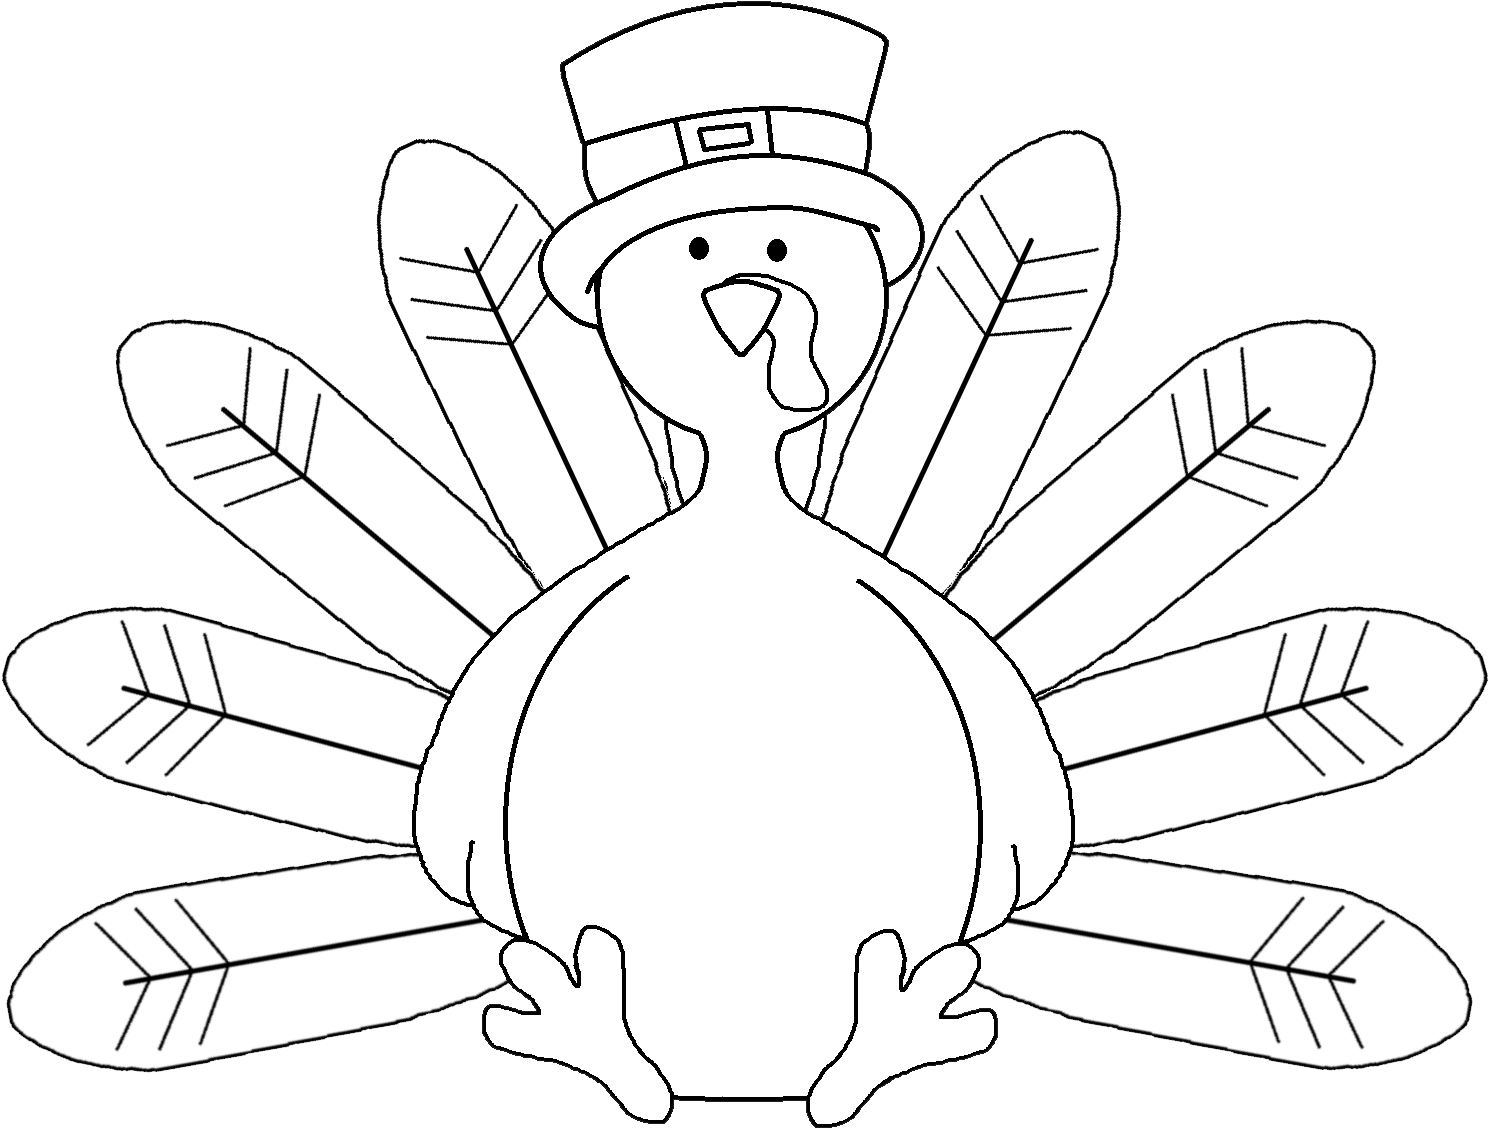 Transparent turkey dinner clipart black and white - Coloring Pages Turkey - Thanksgiving Turkey Clip Art Black And White